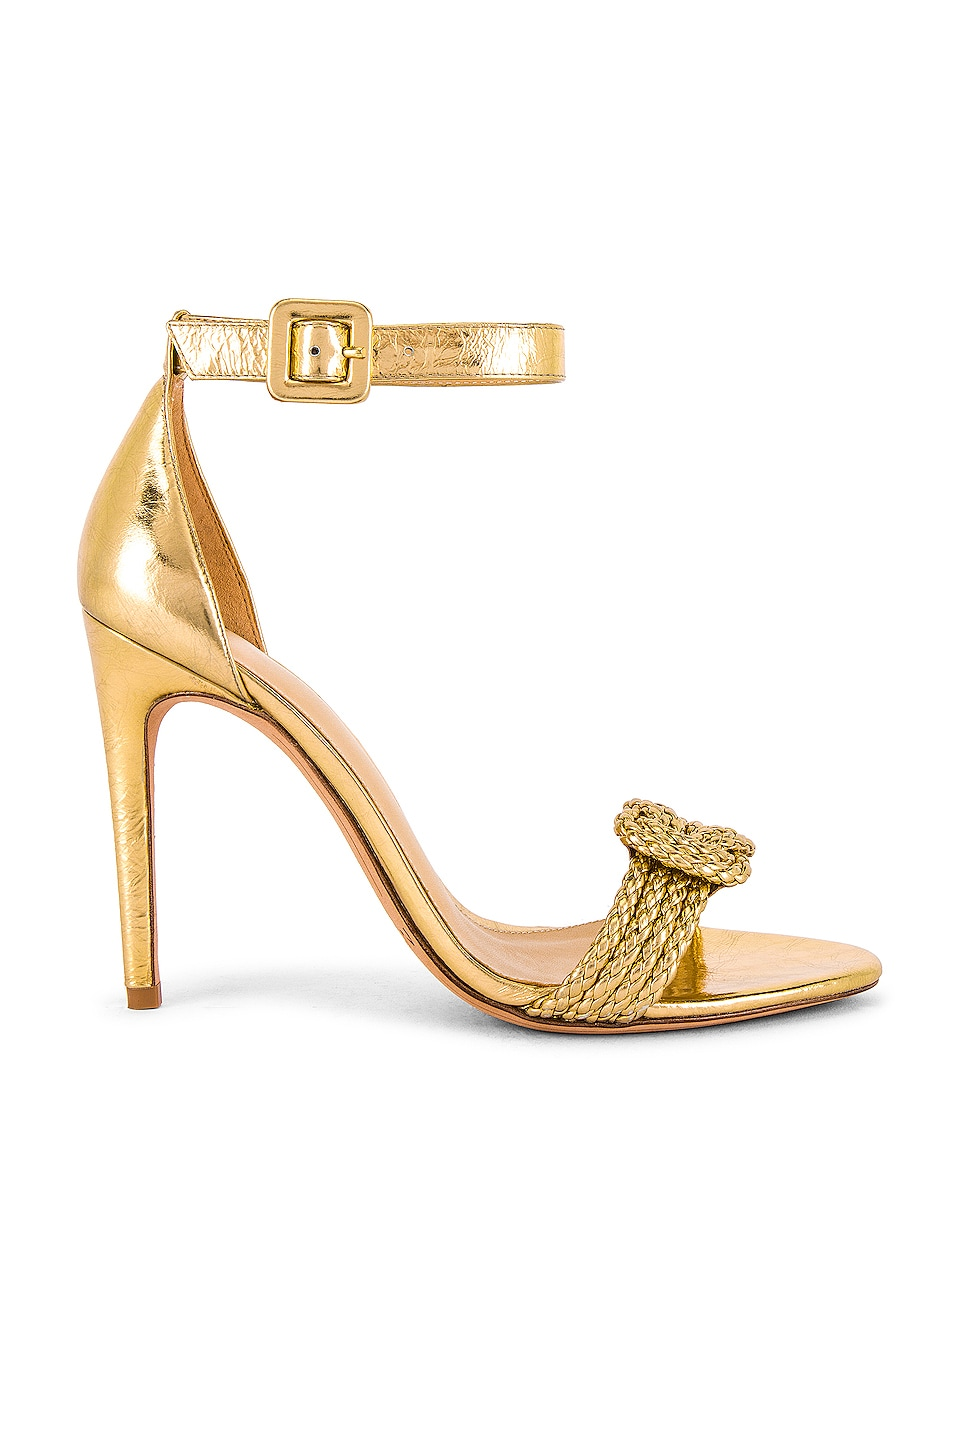 Alexandre Birman Vicky Braid Sandal in Golden